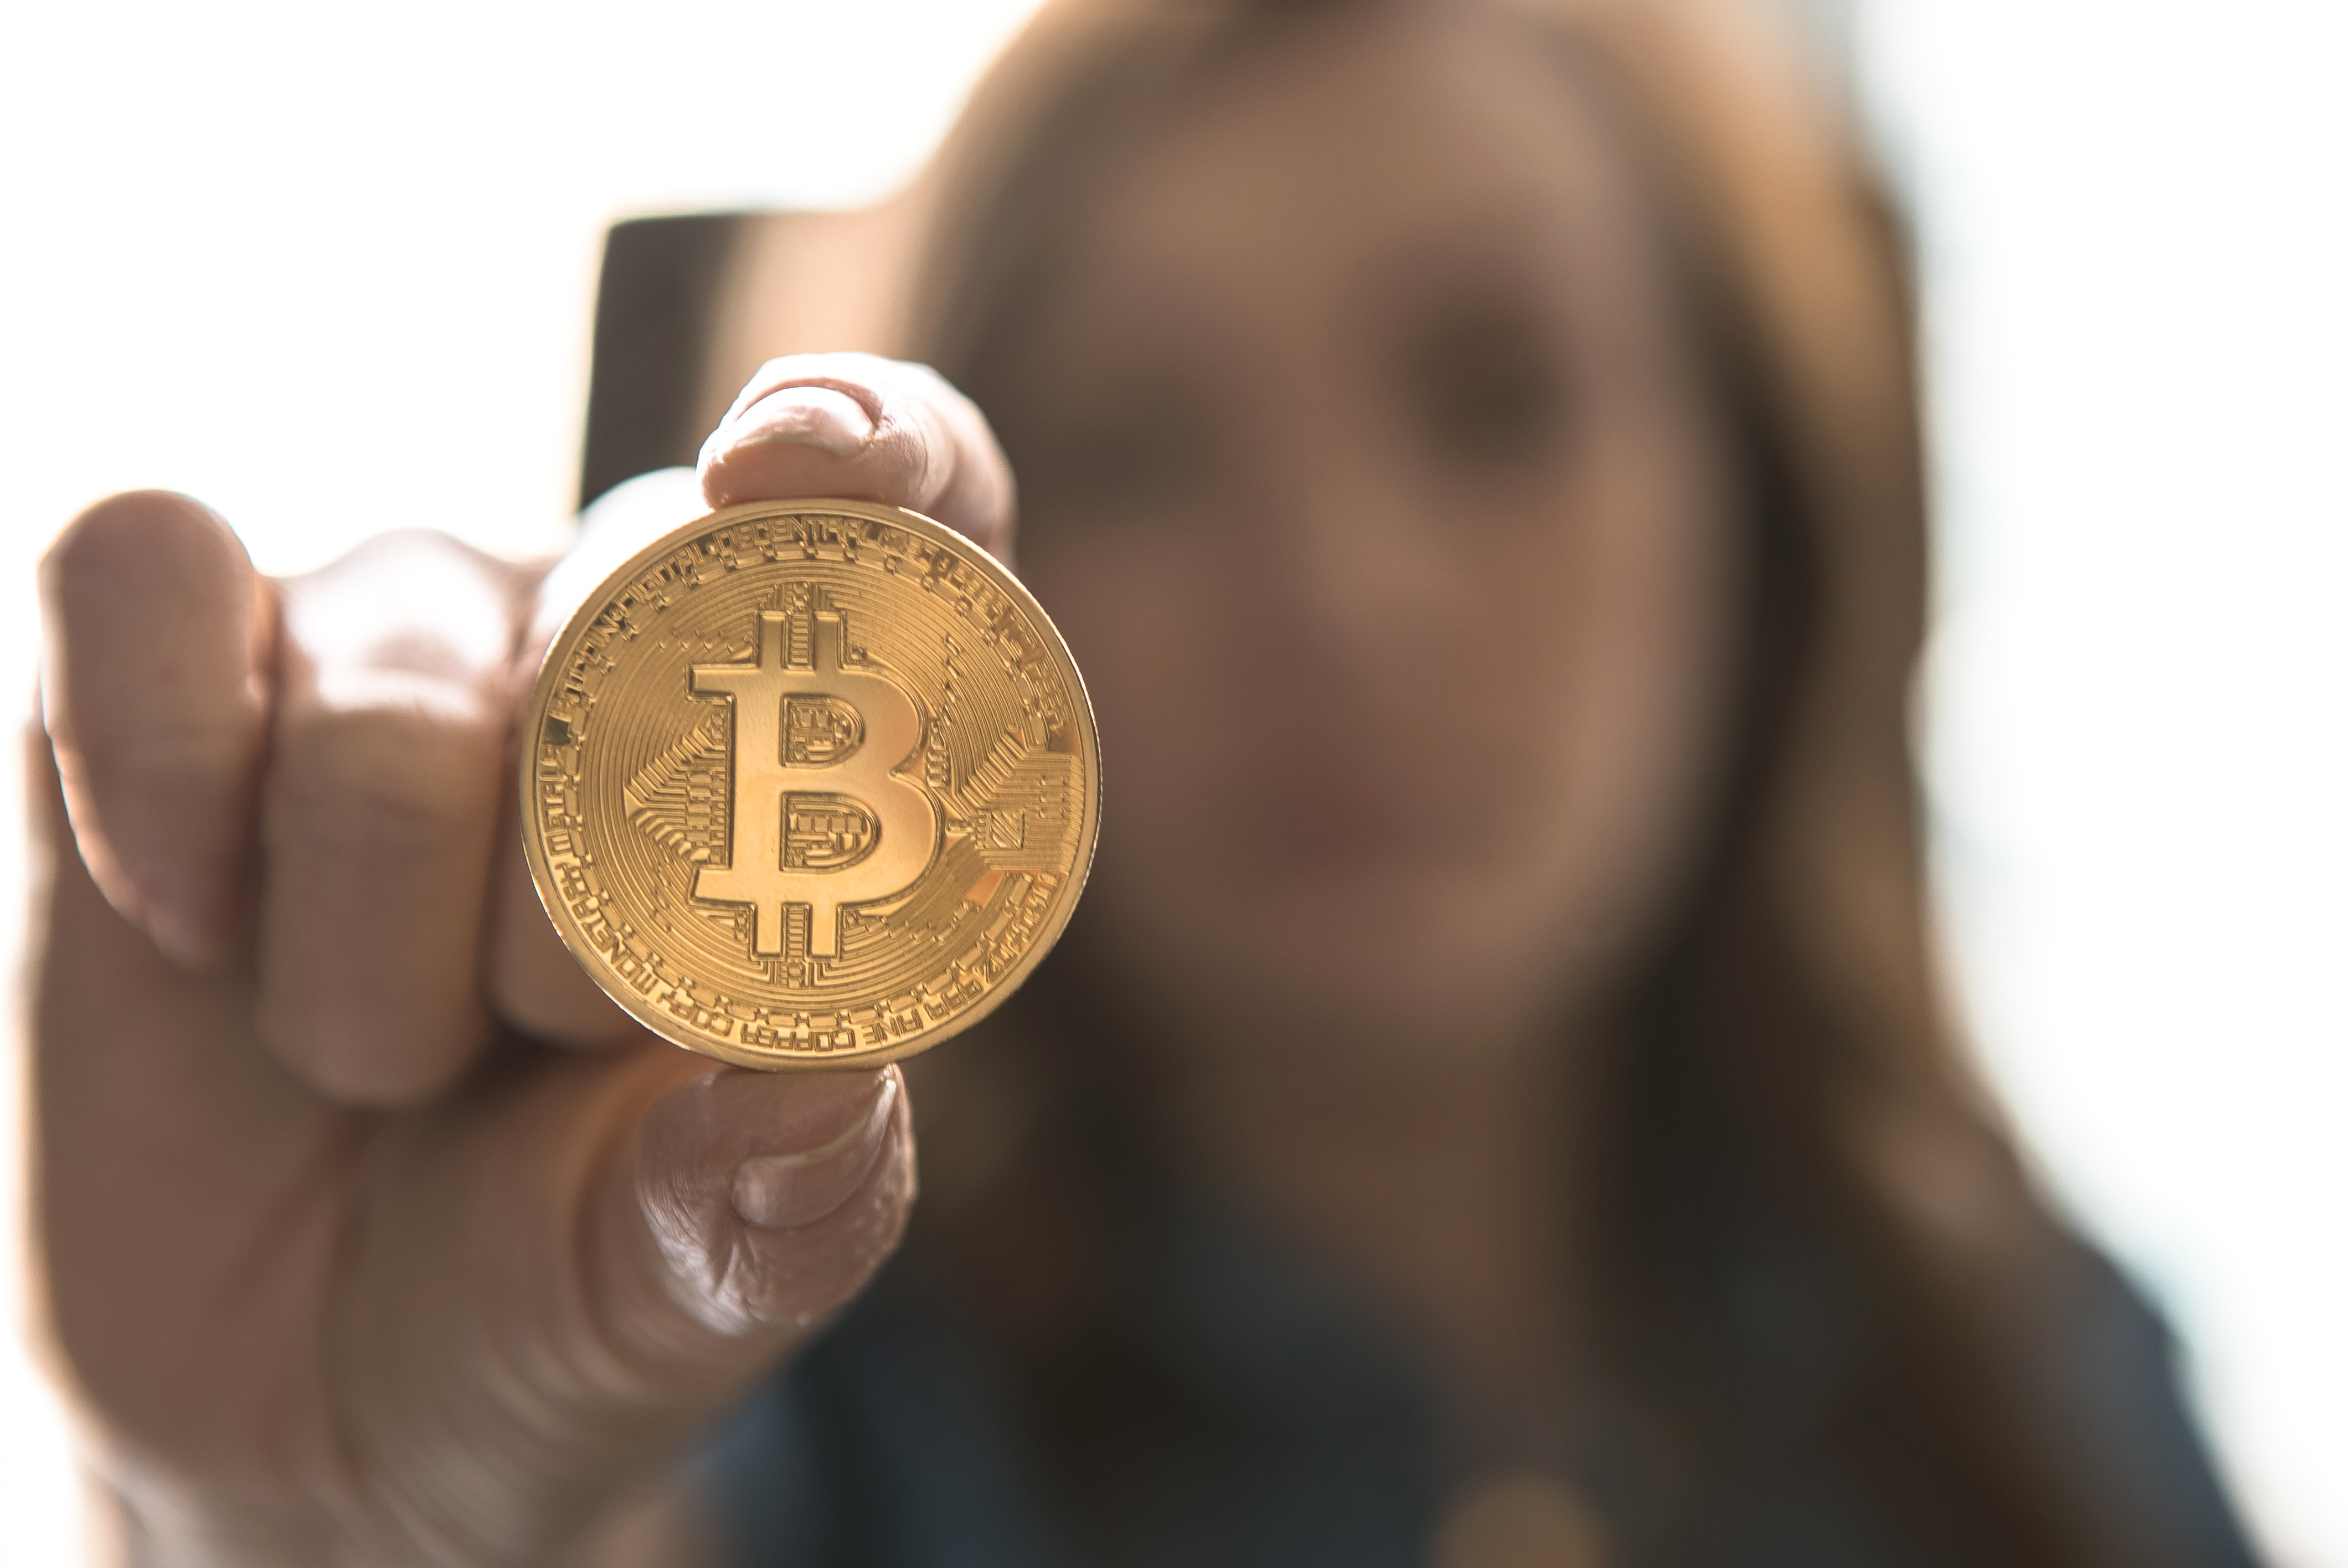 The Libra's Cold Reception from Congress Shows Why We Need Bitcoin